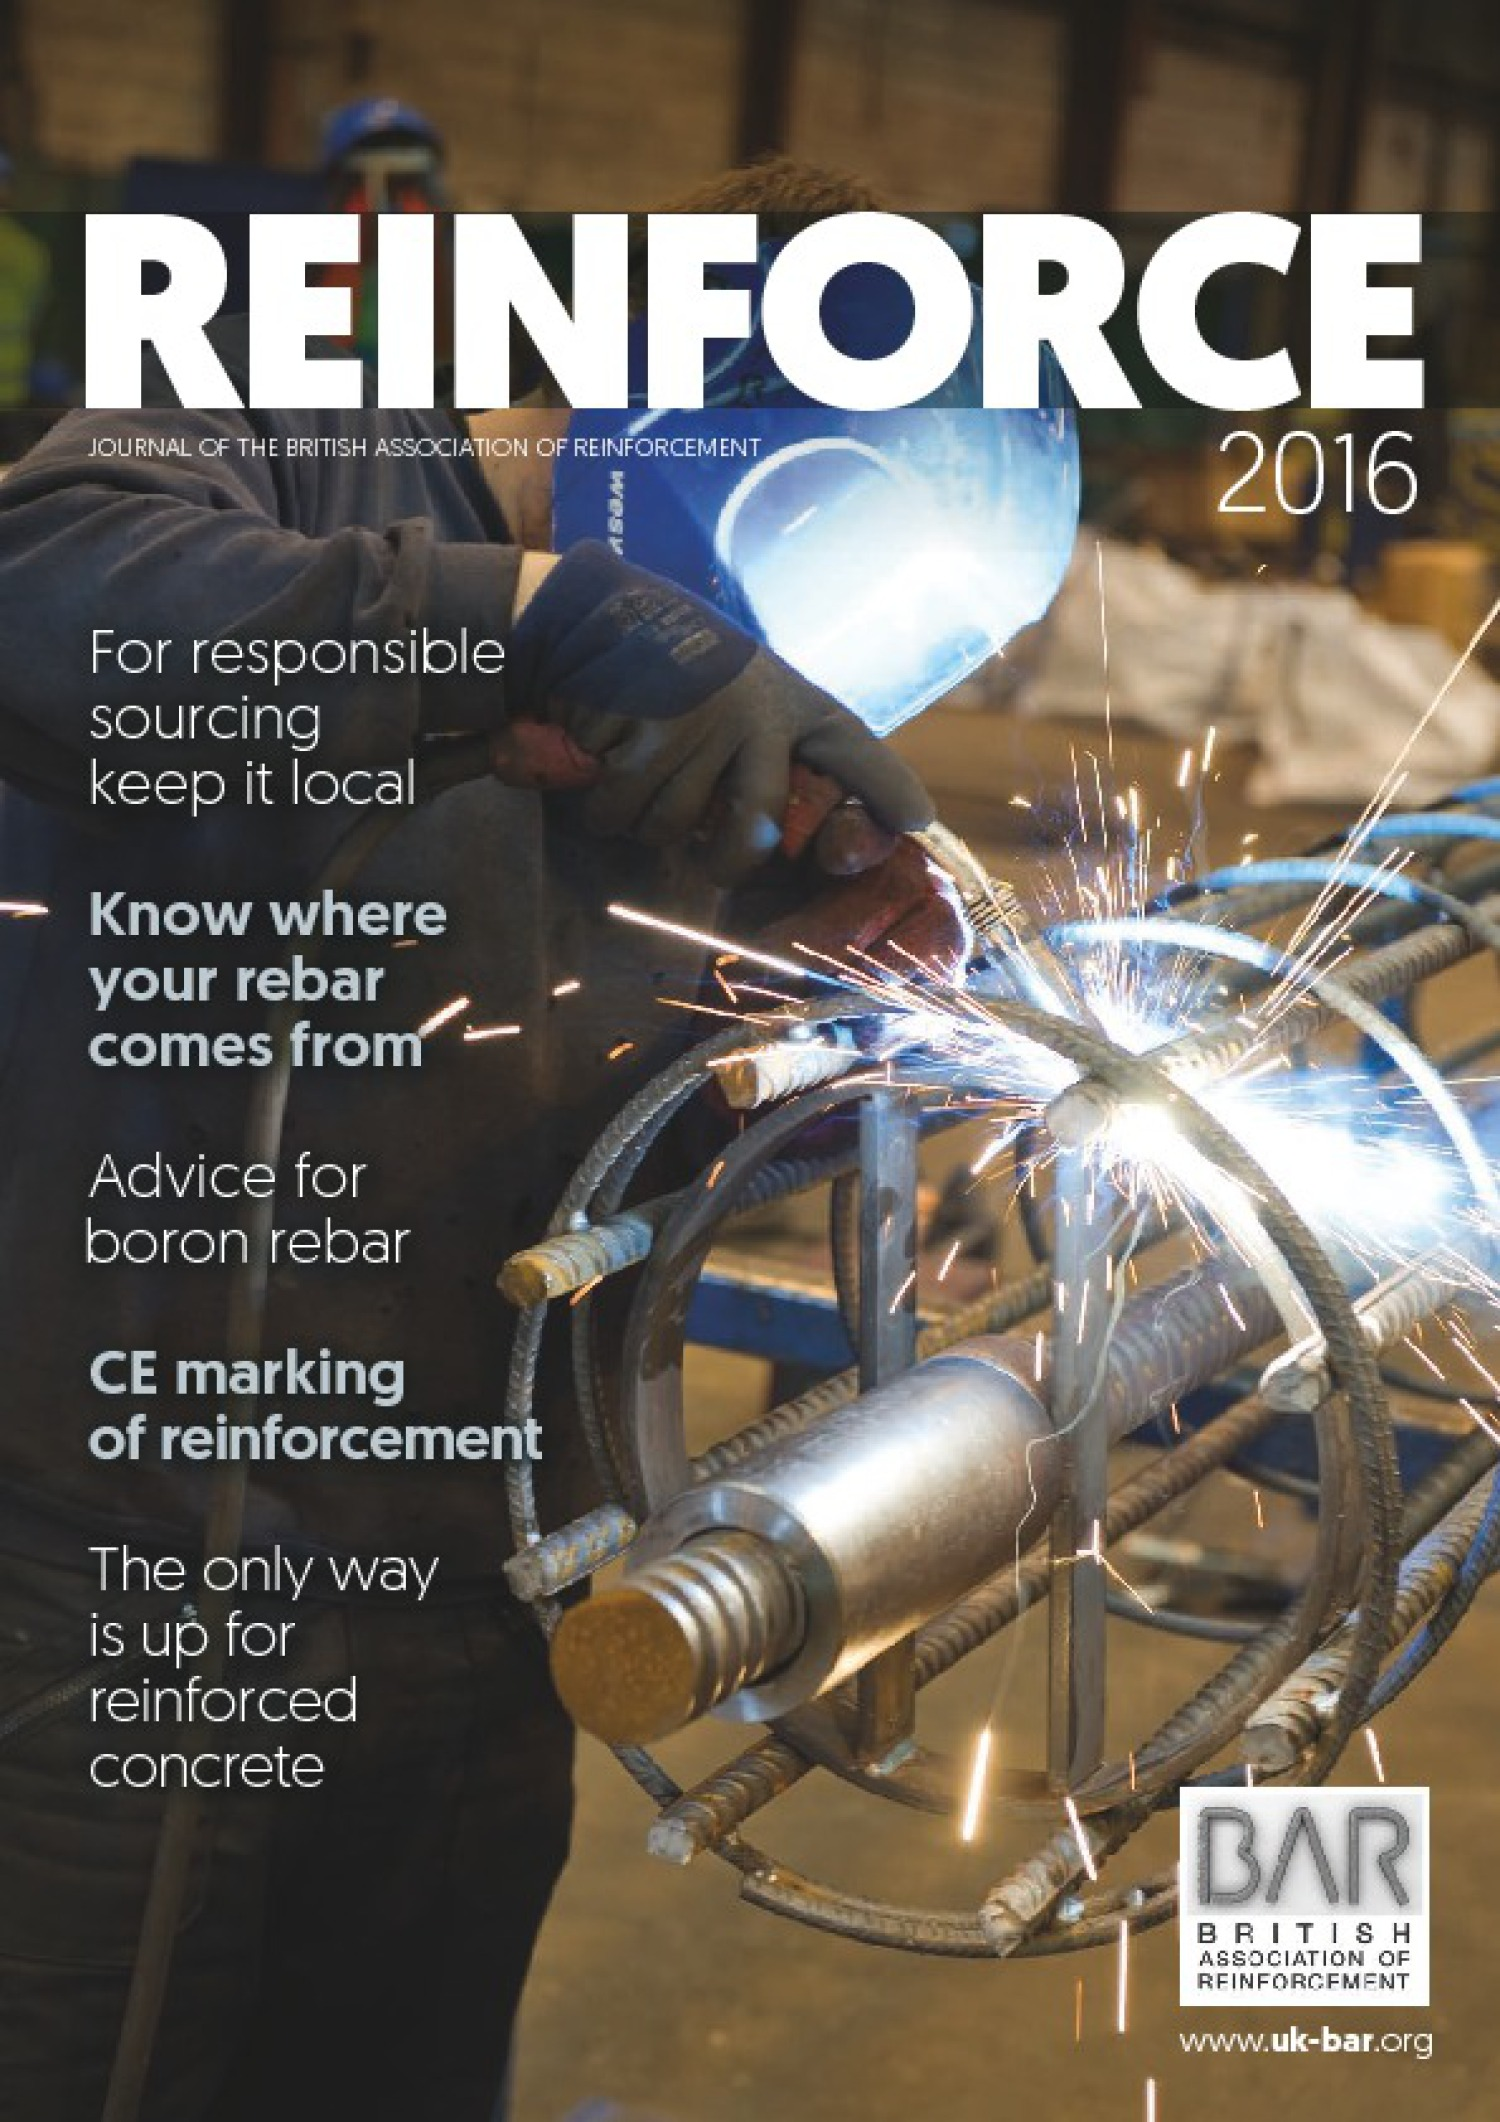 Reinforce Magazine 2016